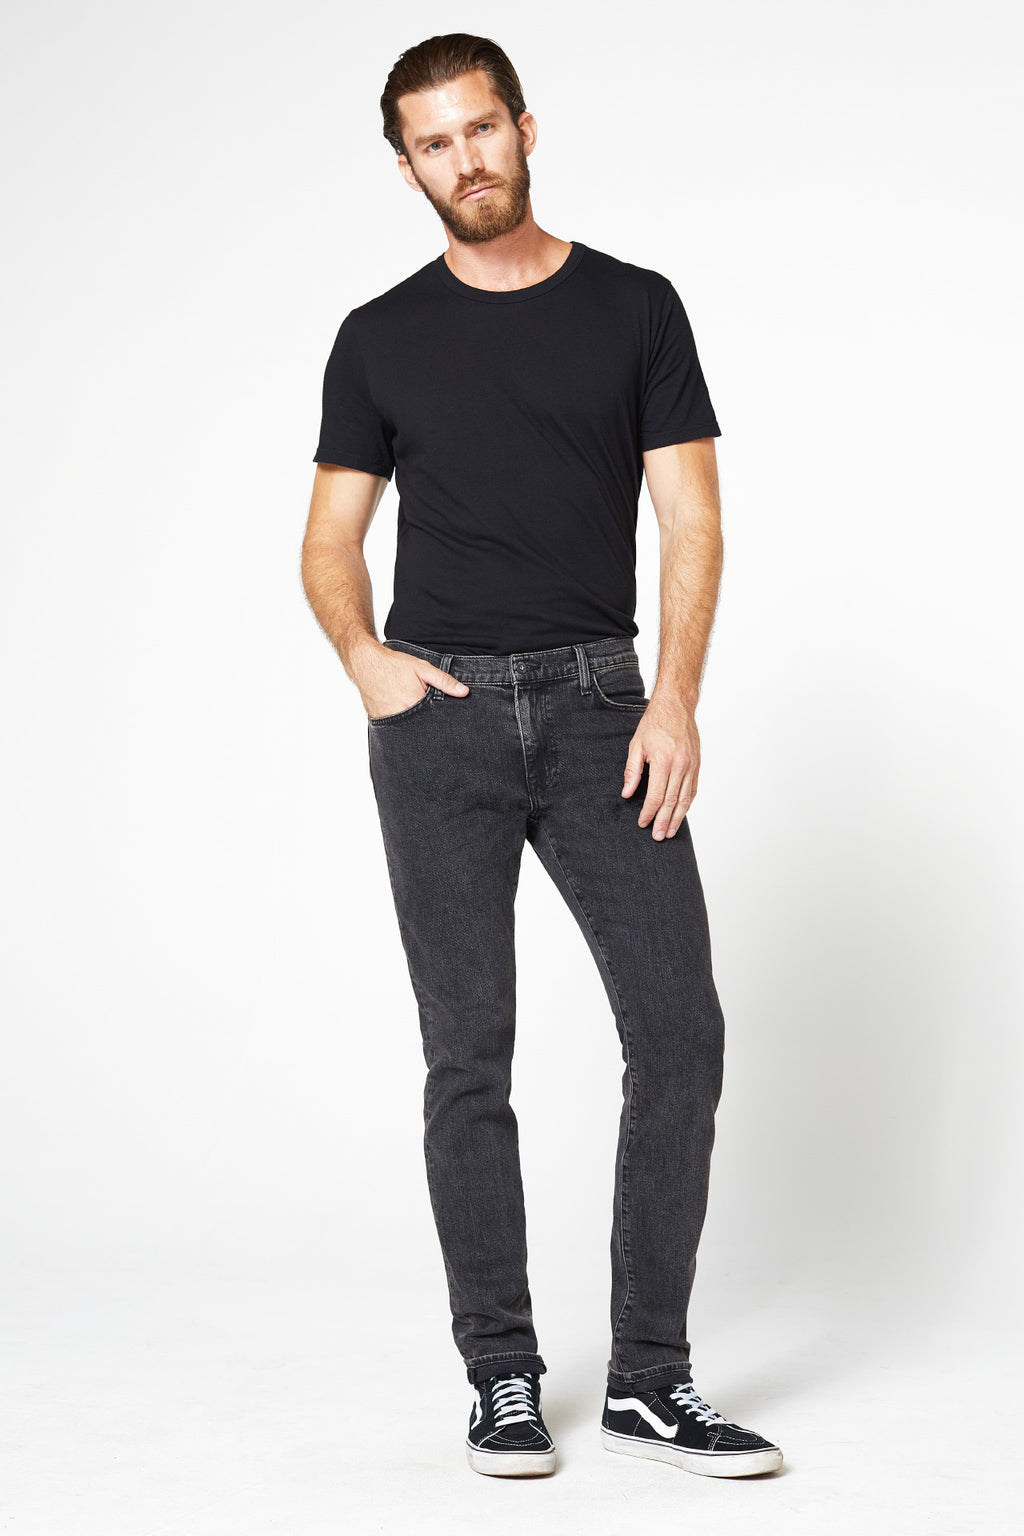 The 76 Jean in Onyx